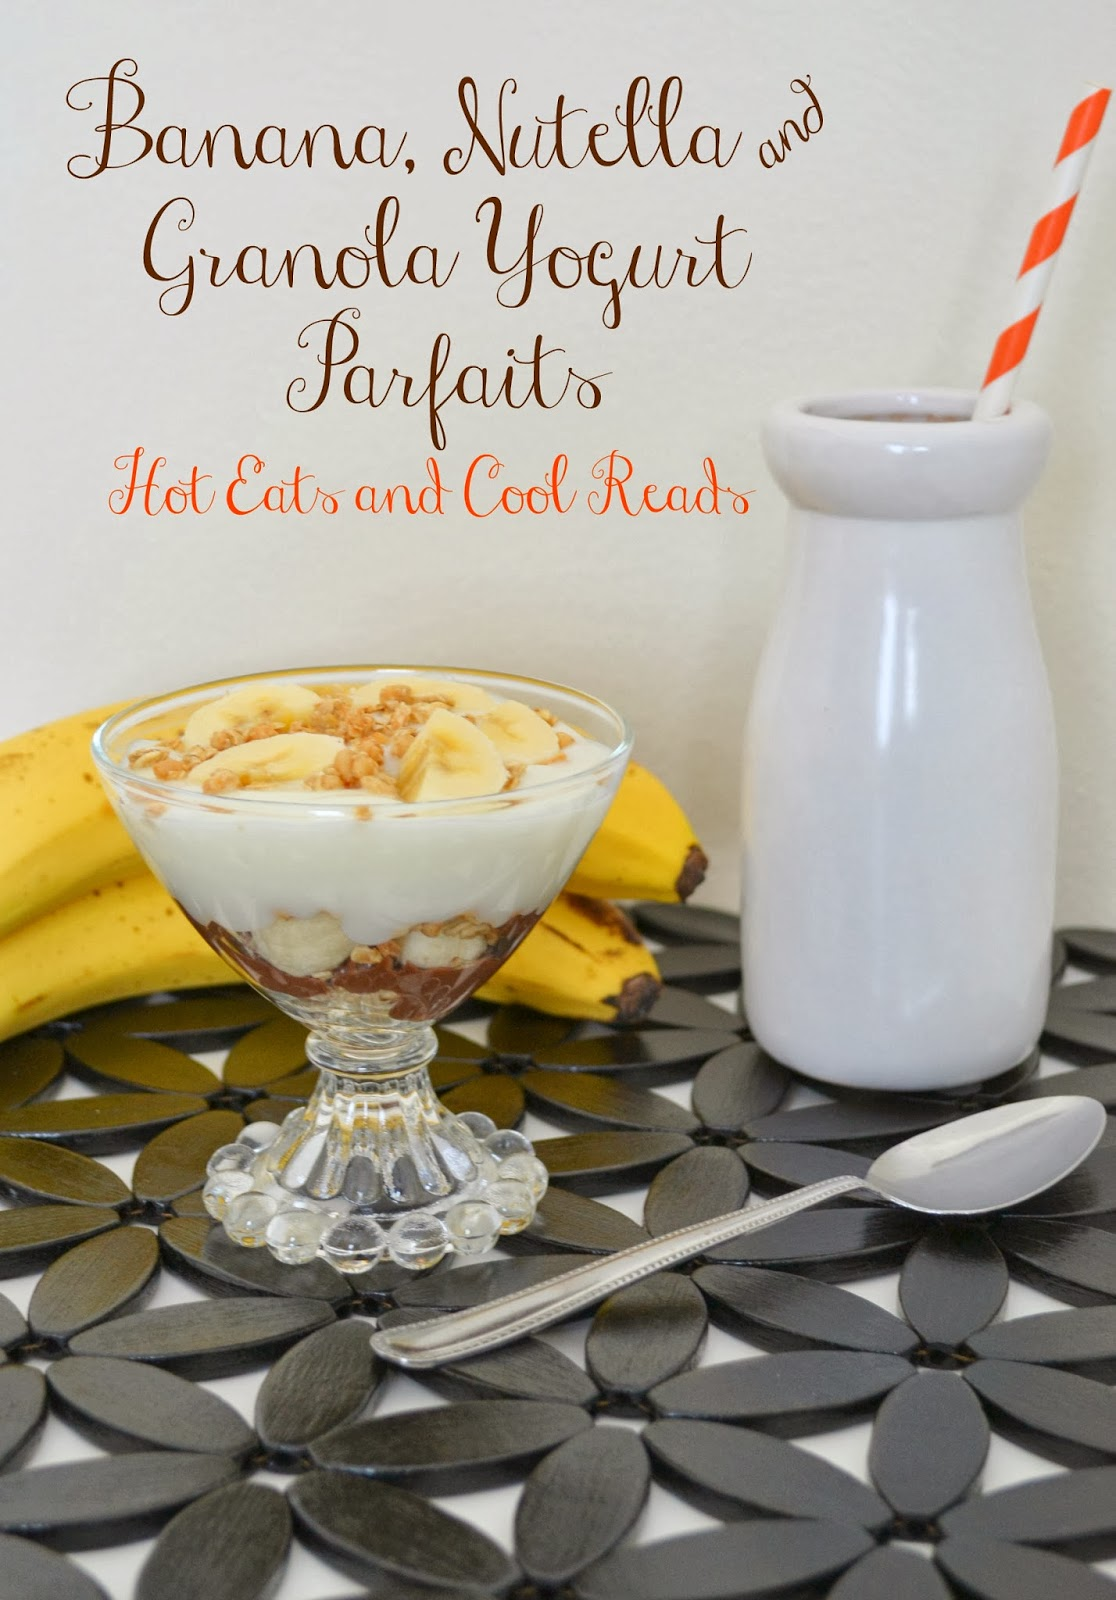 Banana, Nutella & Granola Yogurt Parfaits